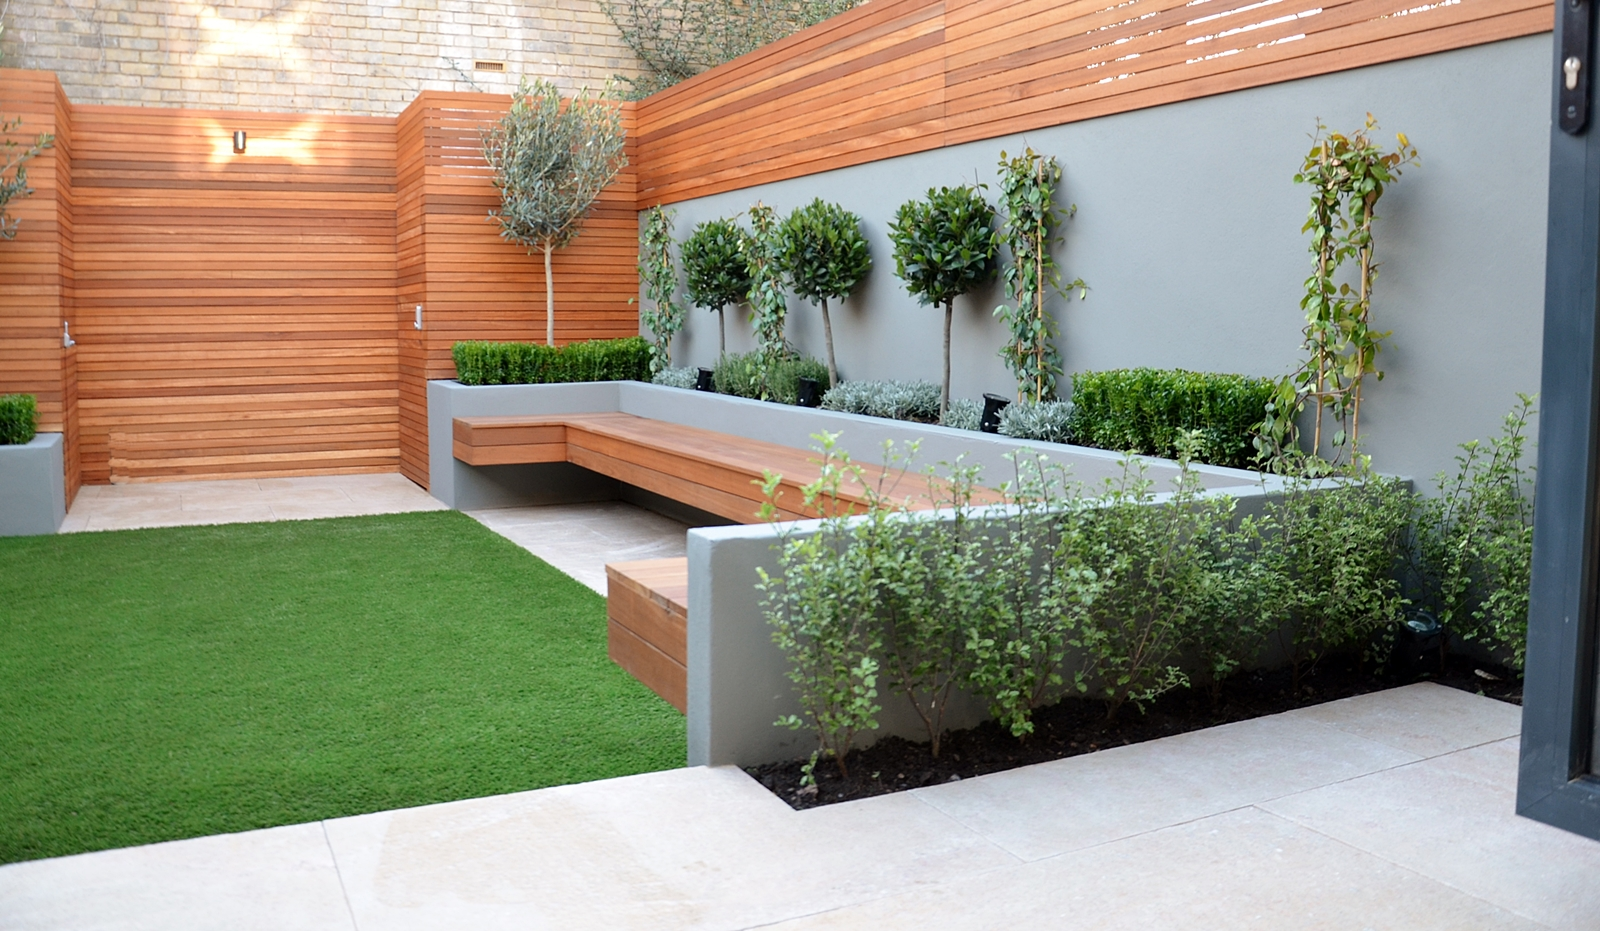 Clapham and london garden design 2015 for Contemporary gardens